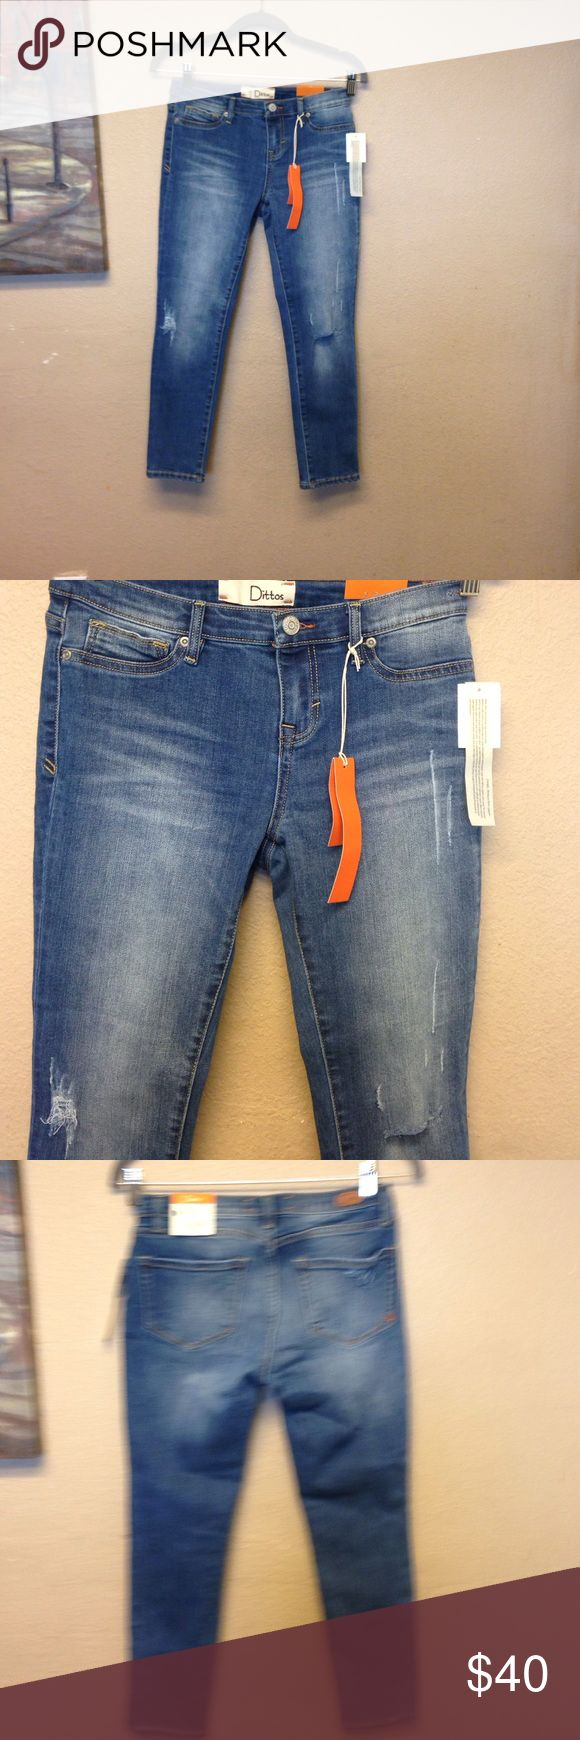 Dittos jeans Blue Taylor calypso destructed/ new with tags dittos Jeans Skinny